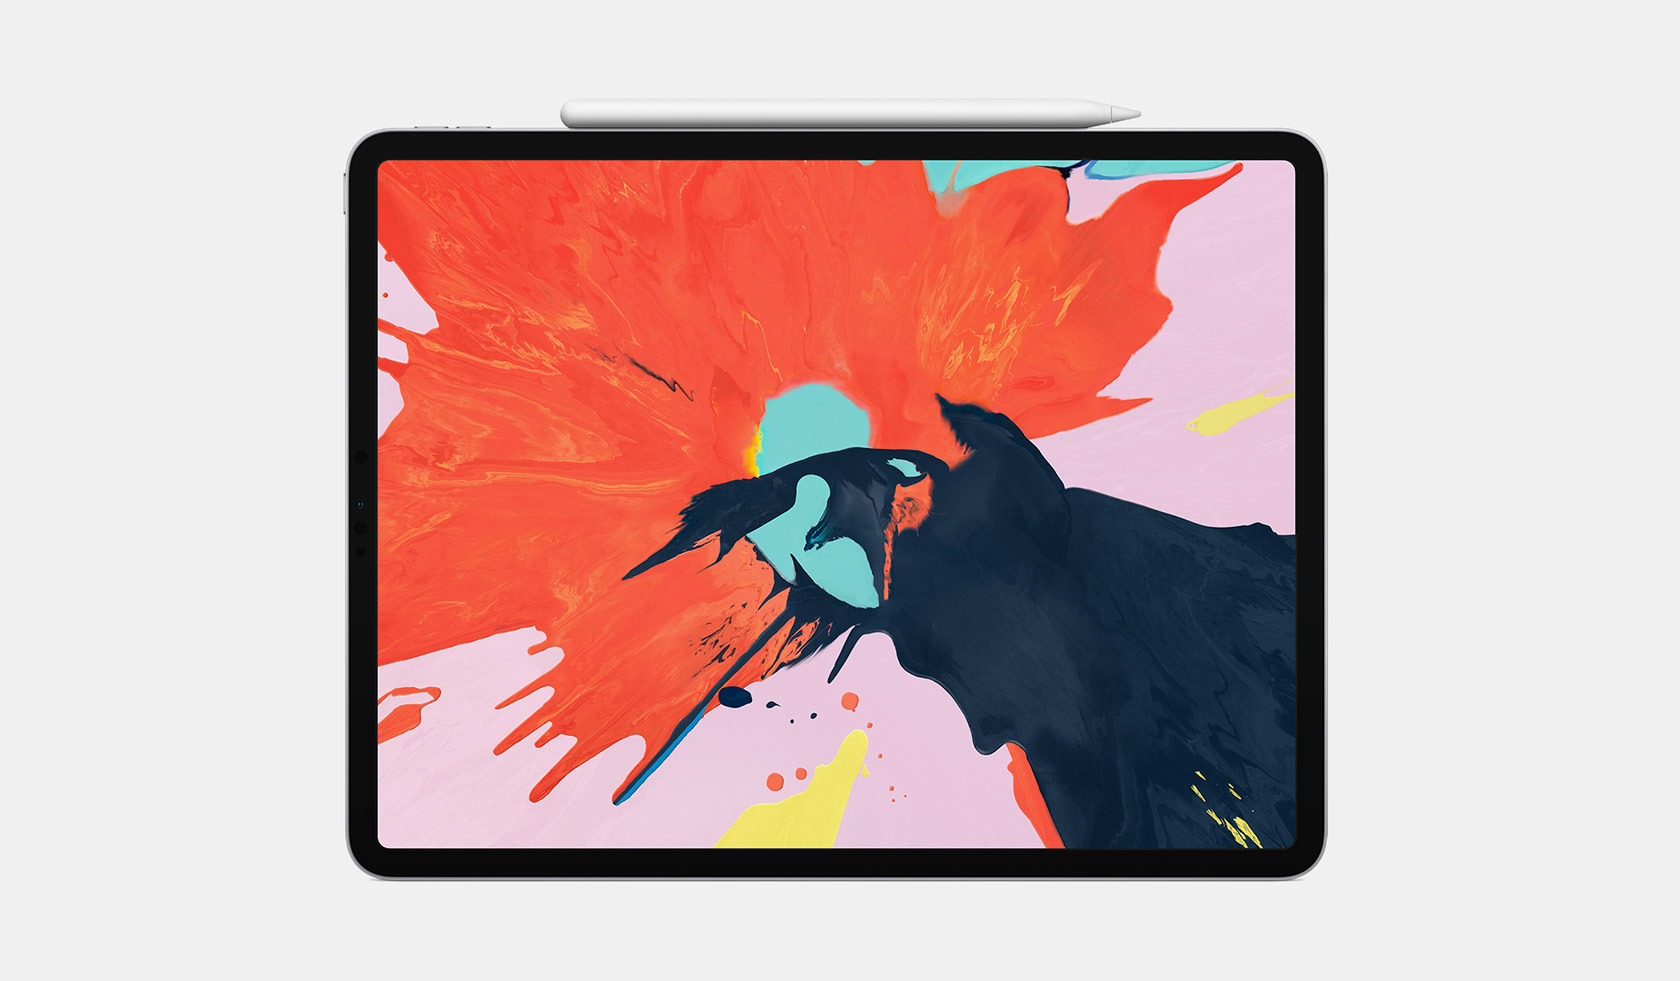 Apple Announces New Ipad Pro With Full Screen Design Wallpaper